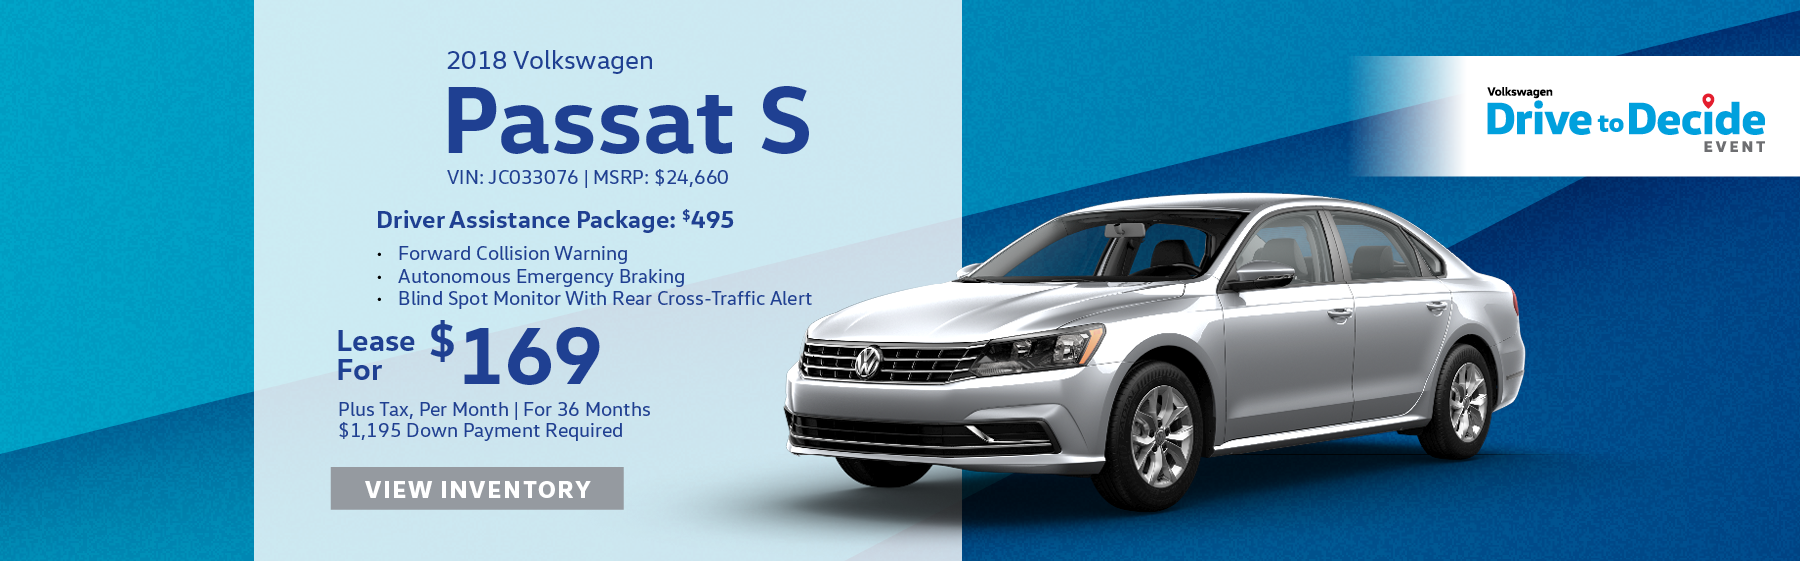 Lease the 2018 Volkswagen Passat S for $169 per month, plus tax for 36 months. Optional Driver Assistance Package for $495 includes Forward Collision Warning, Autonomous Emergency Braking, and Blind Spot Monitor With Rear Cross-Traffic Alert. Click here to view inventory.